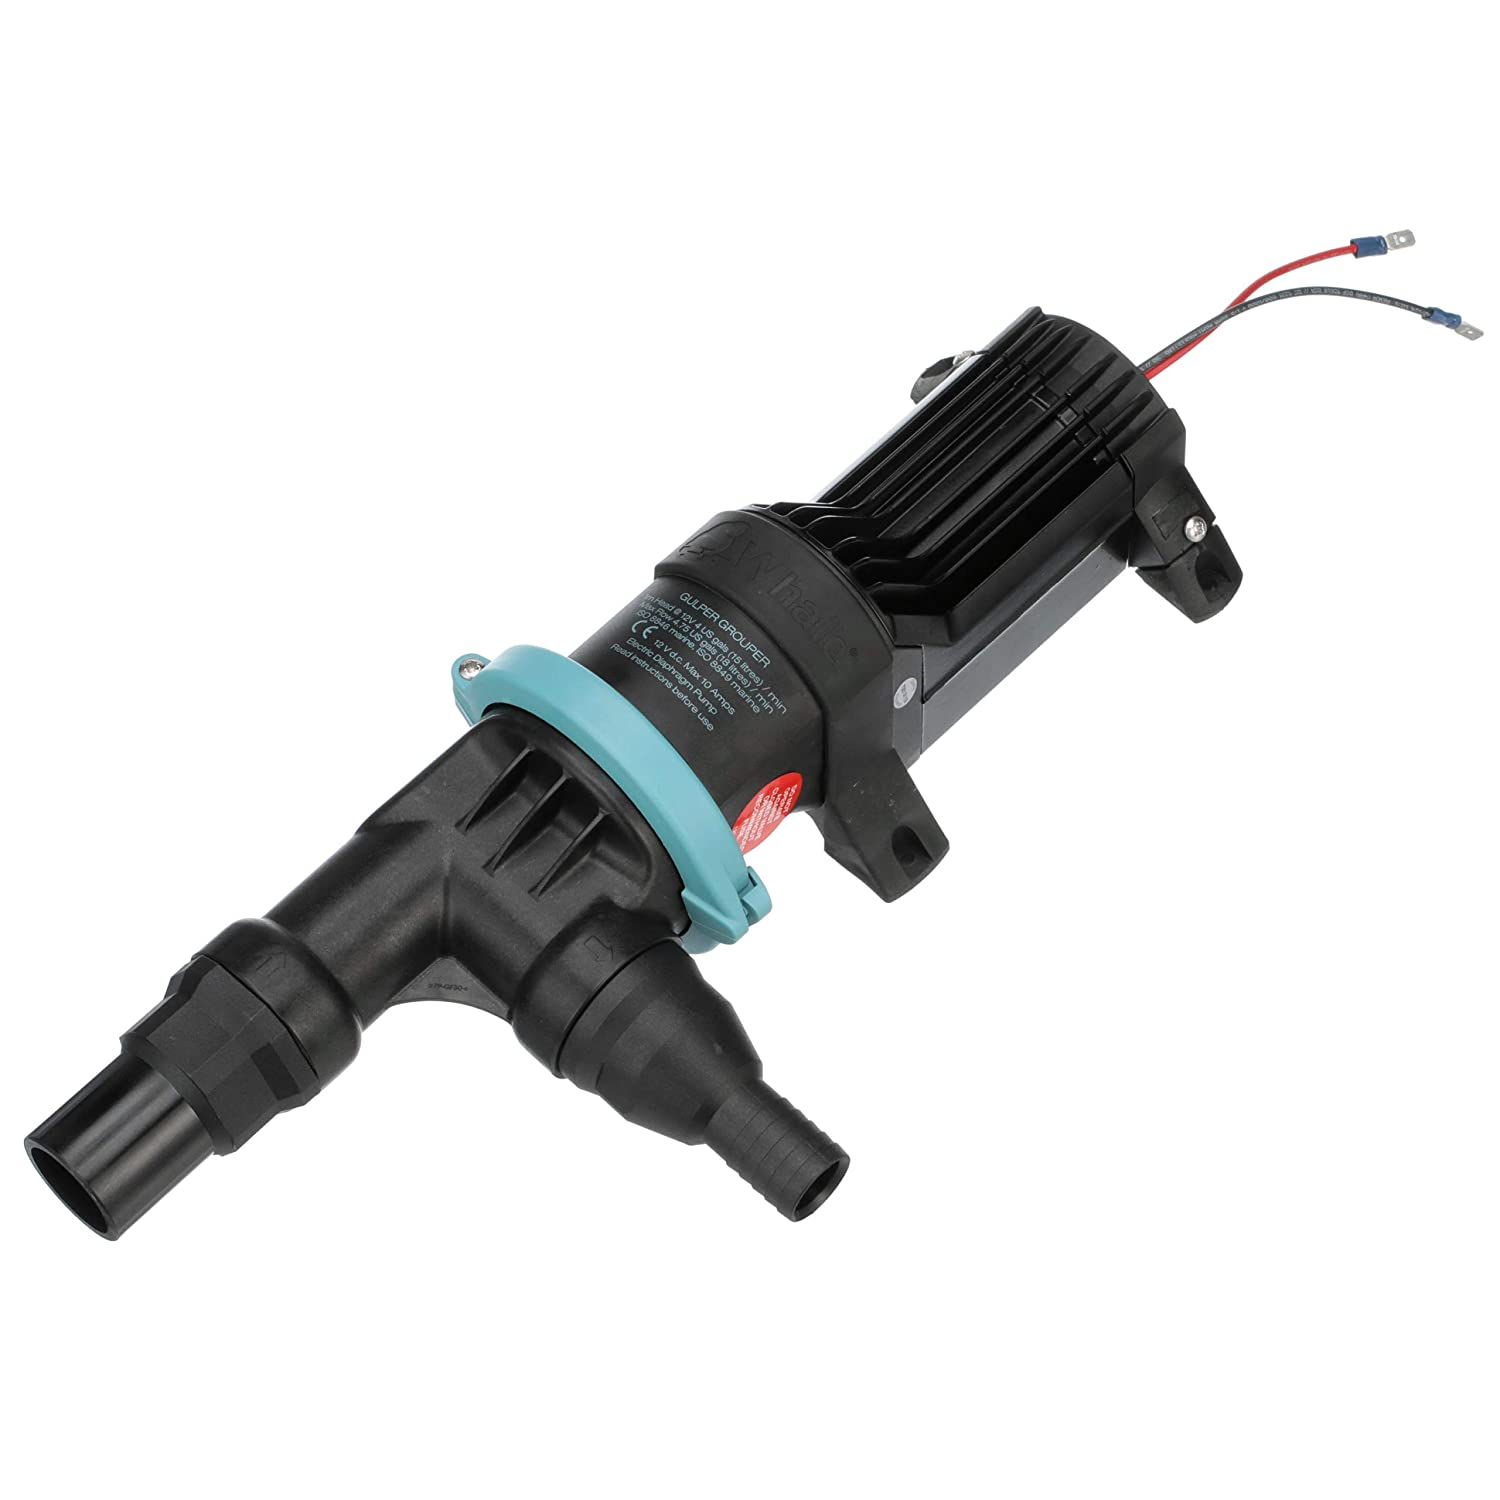 Livewell or Baitwell 1 Inch//1 /½ Inch Hose Connections Whale BP4772 Gulper Grouper Mk 3 Fishbox Discharge Pump 4.22 GPM Flow Rate 12V DC 10 Amps Evacuation Pump for Fishbox